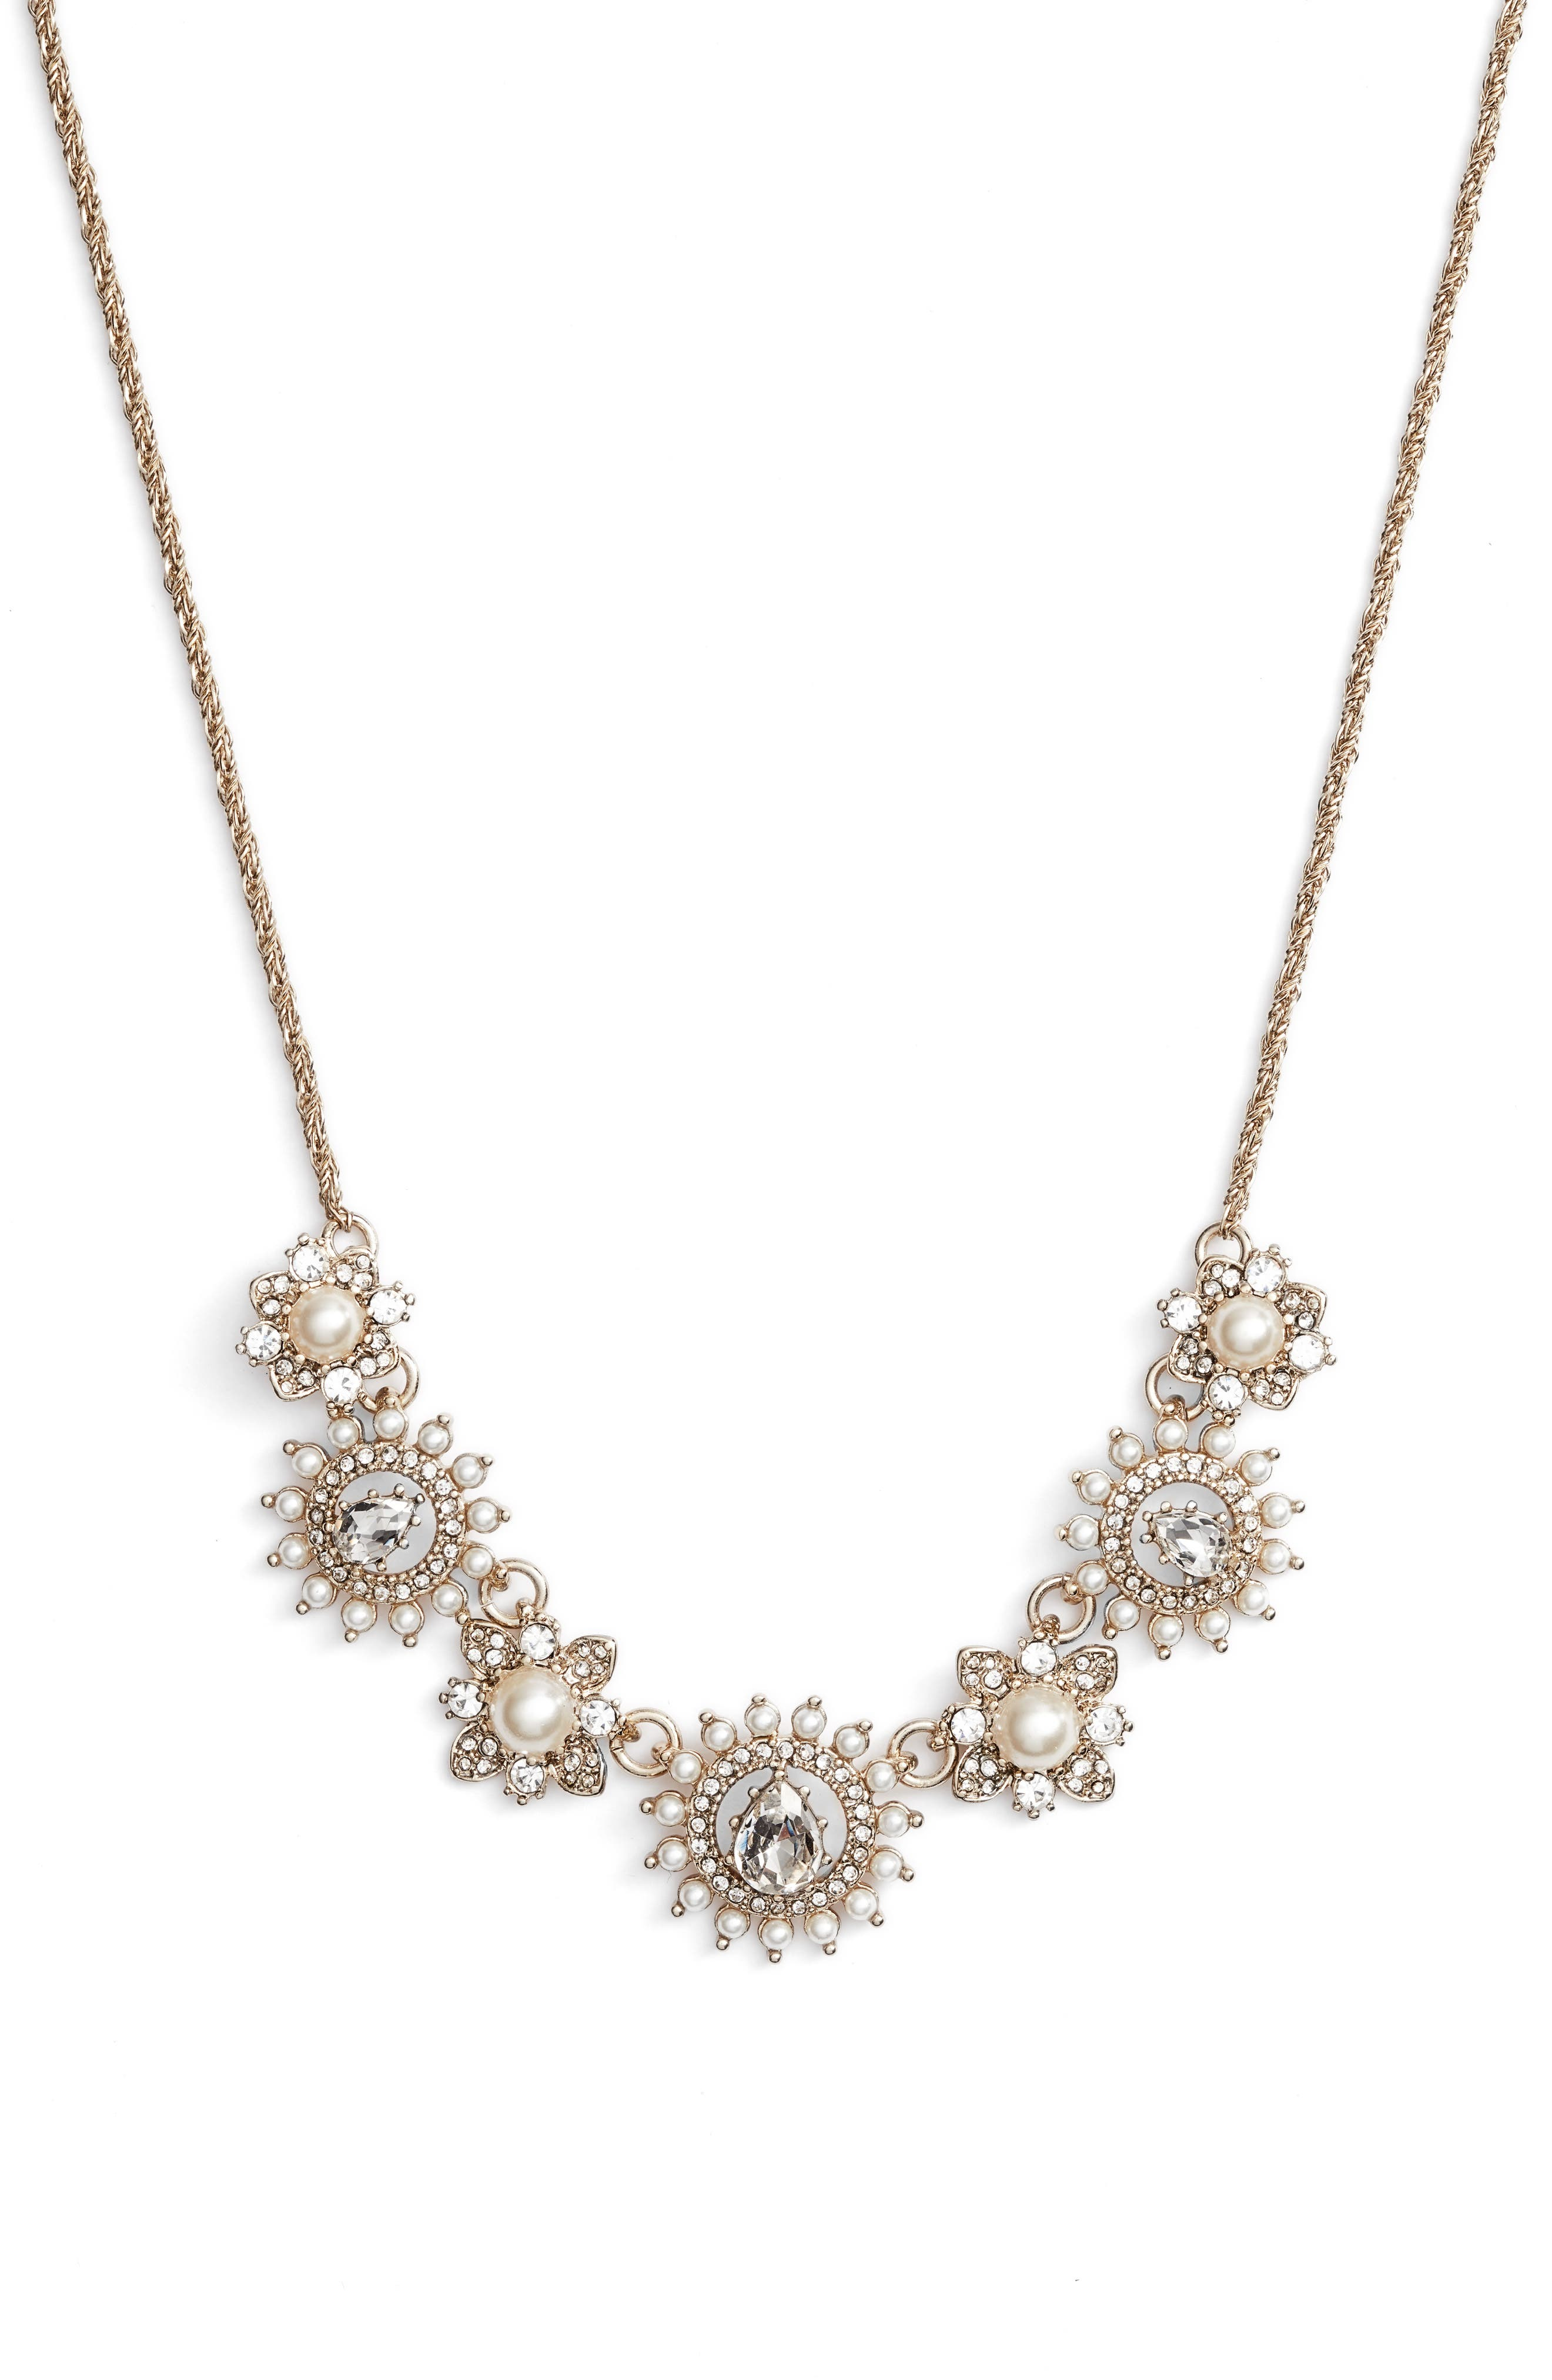 MARCHESA, Frontal Necklace, Main thumbnail 1, color, GOLD/ WHITE/ CRYSTAL